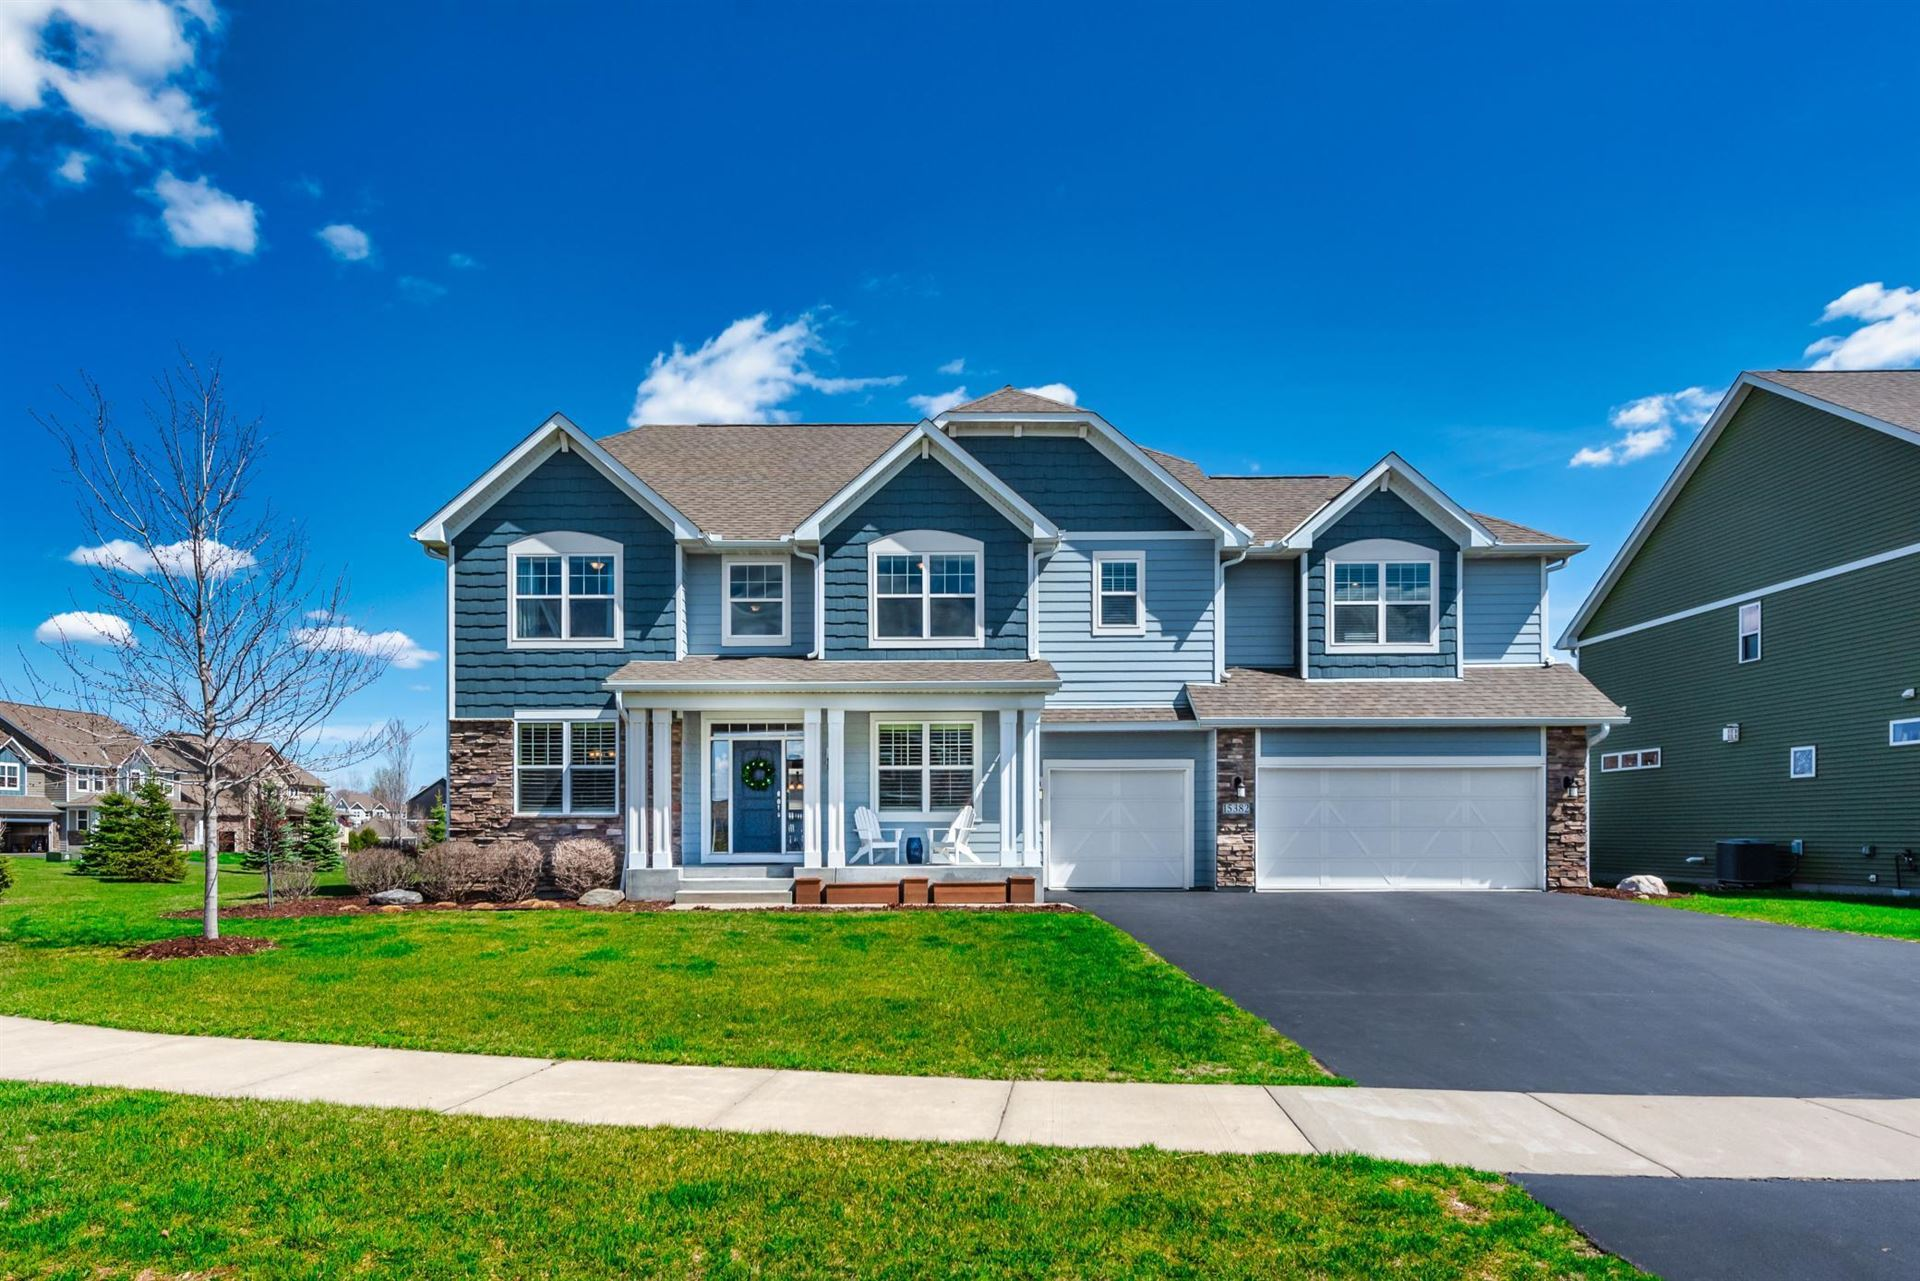 Photo of 15382 Eagle Bay Way, Apple Valley, MN 55124 (MLS # 5724692)